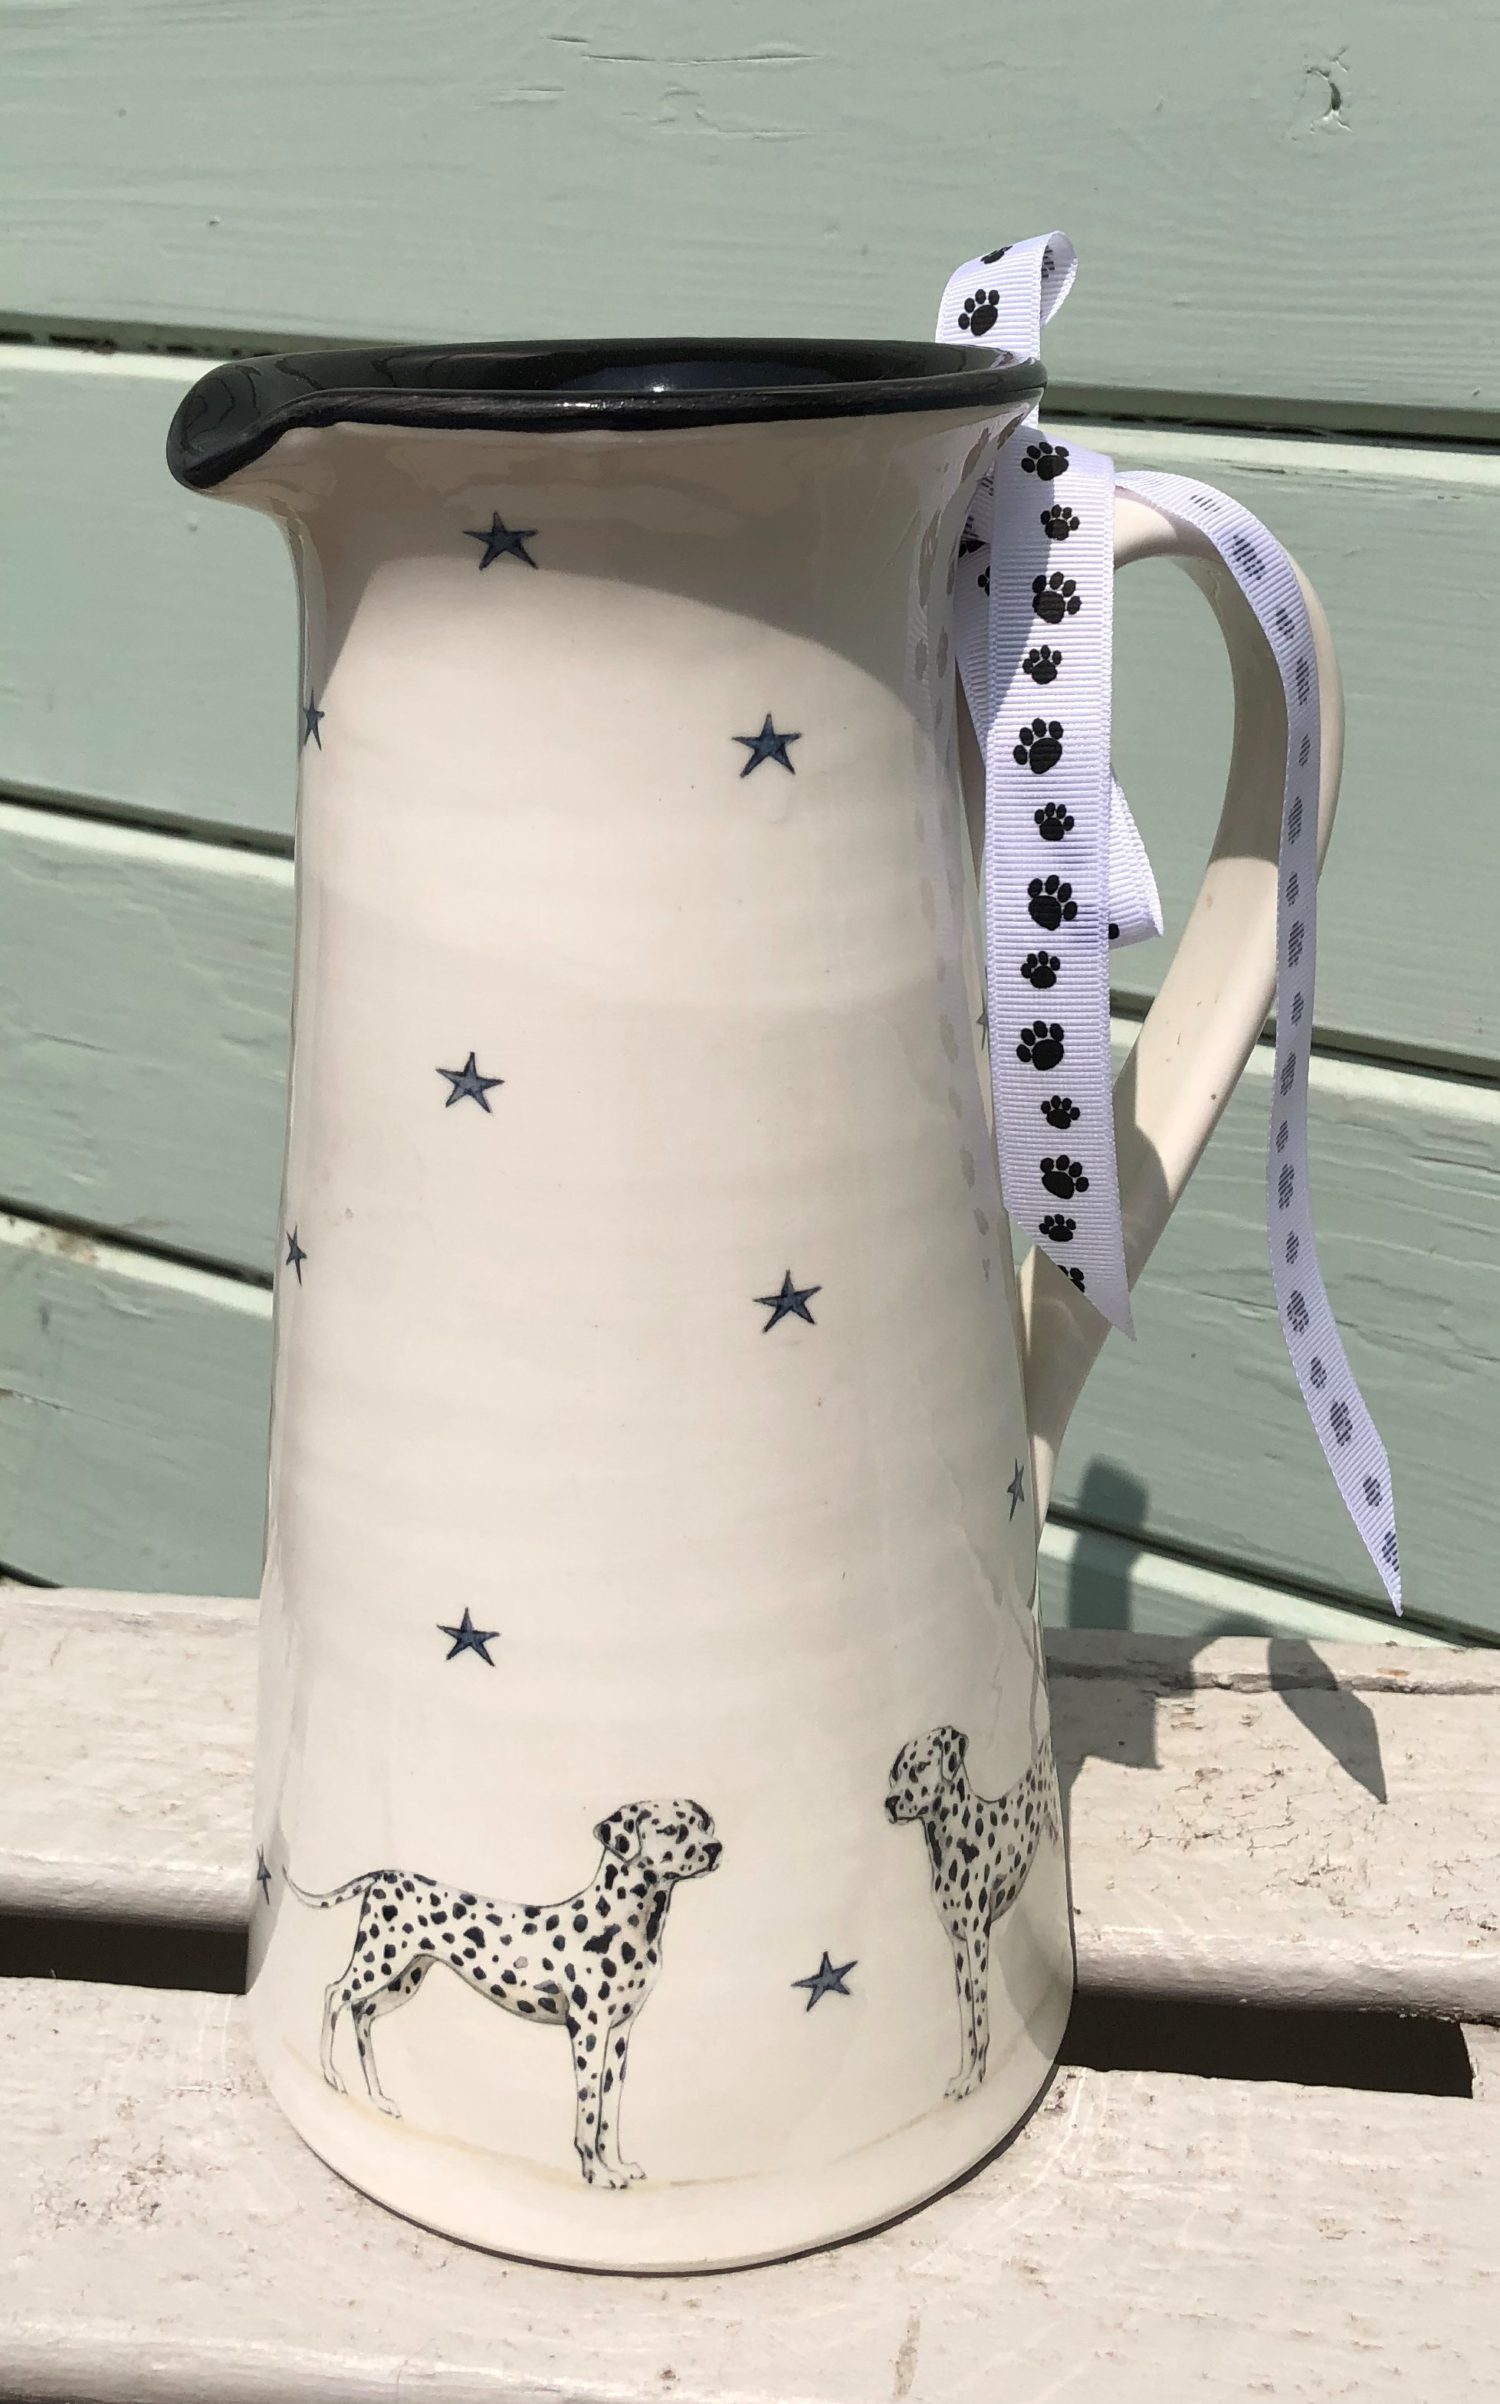 Dalmatian Tall Jug. From £85.